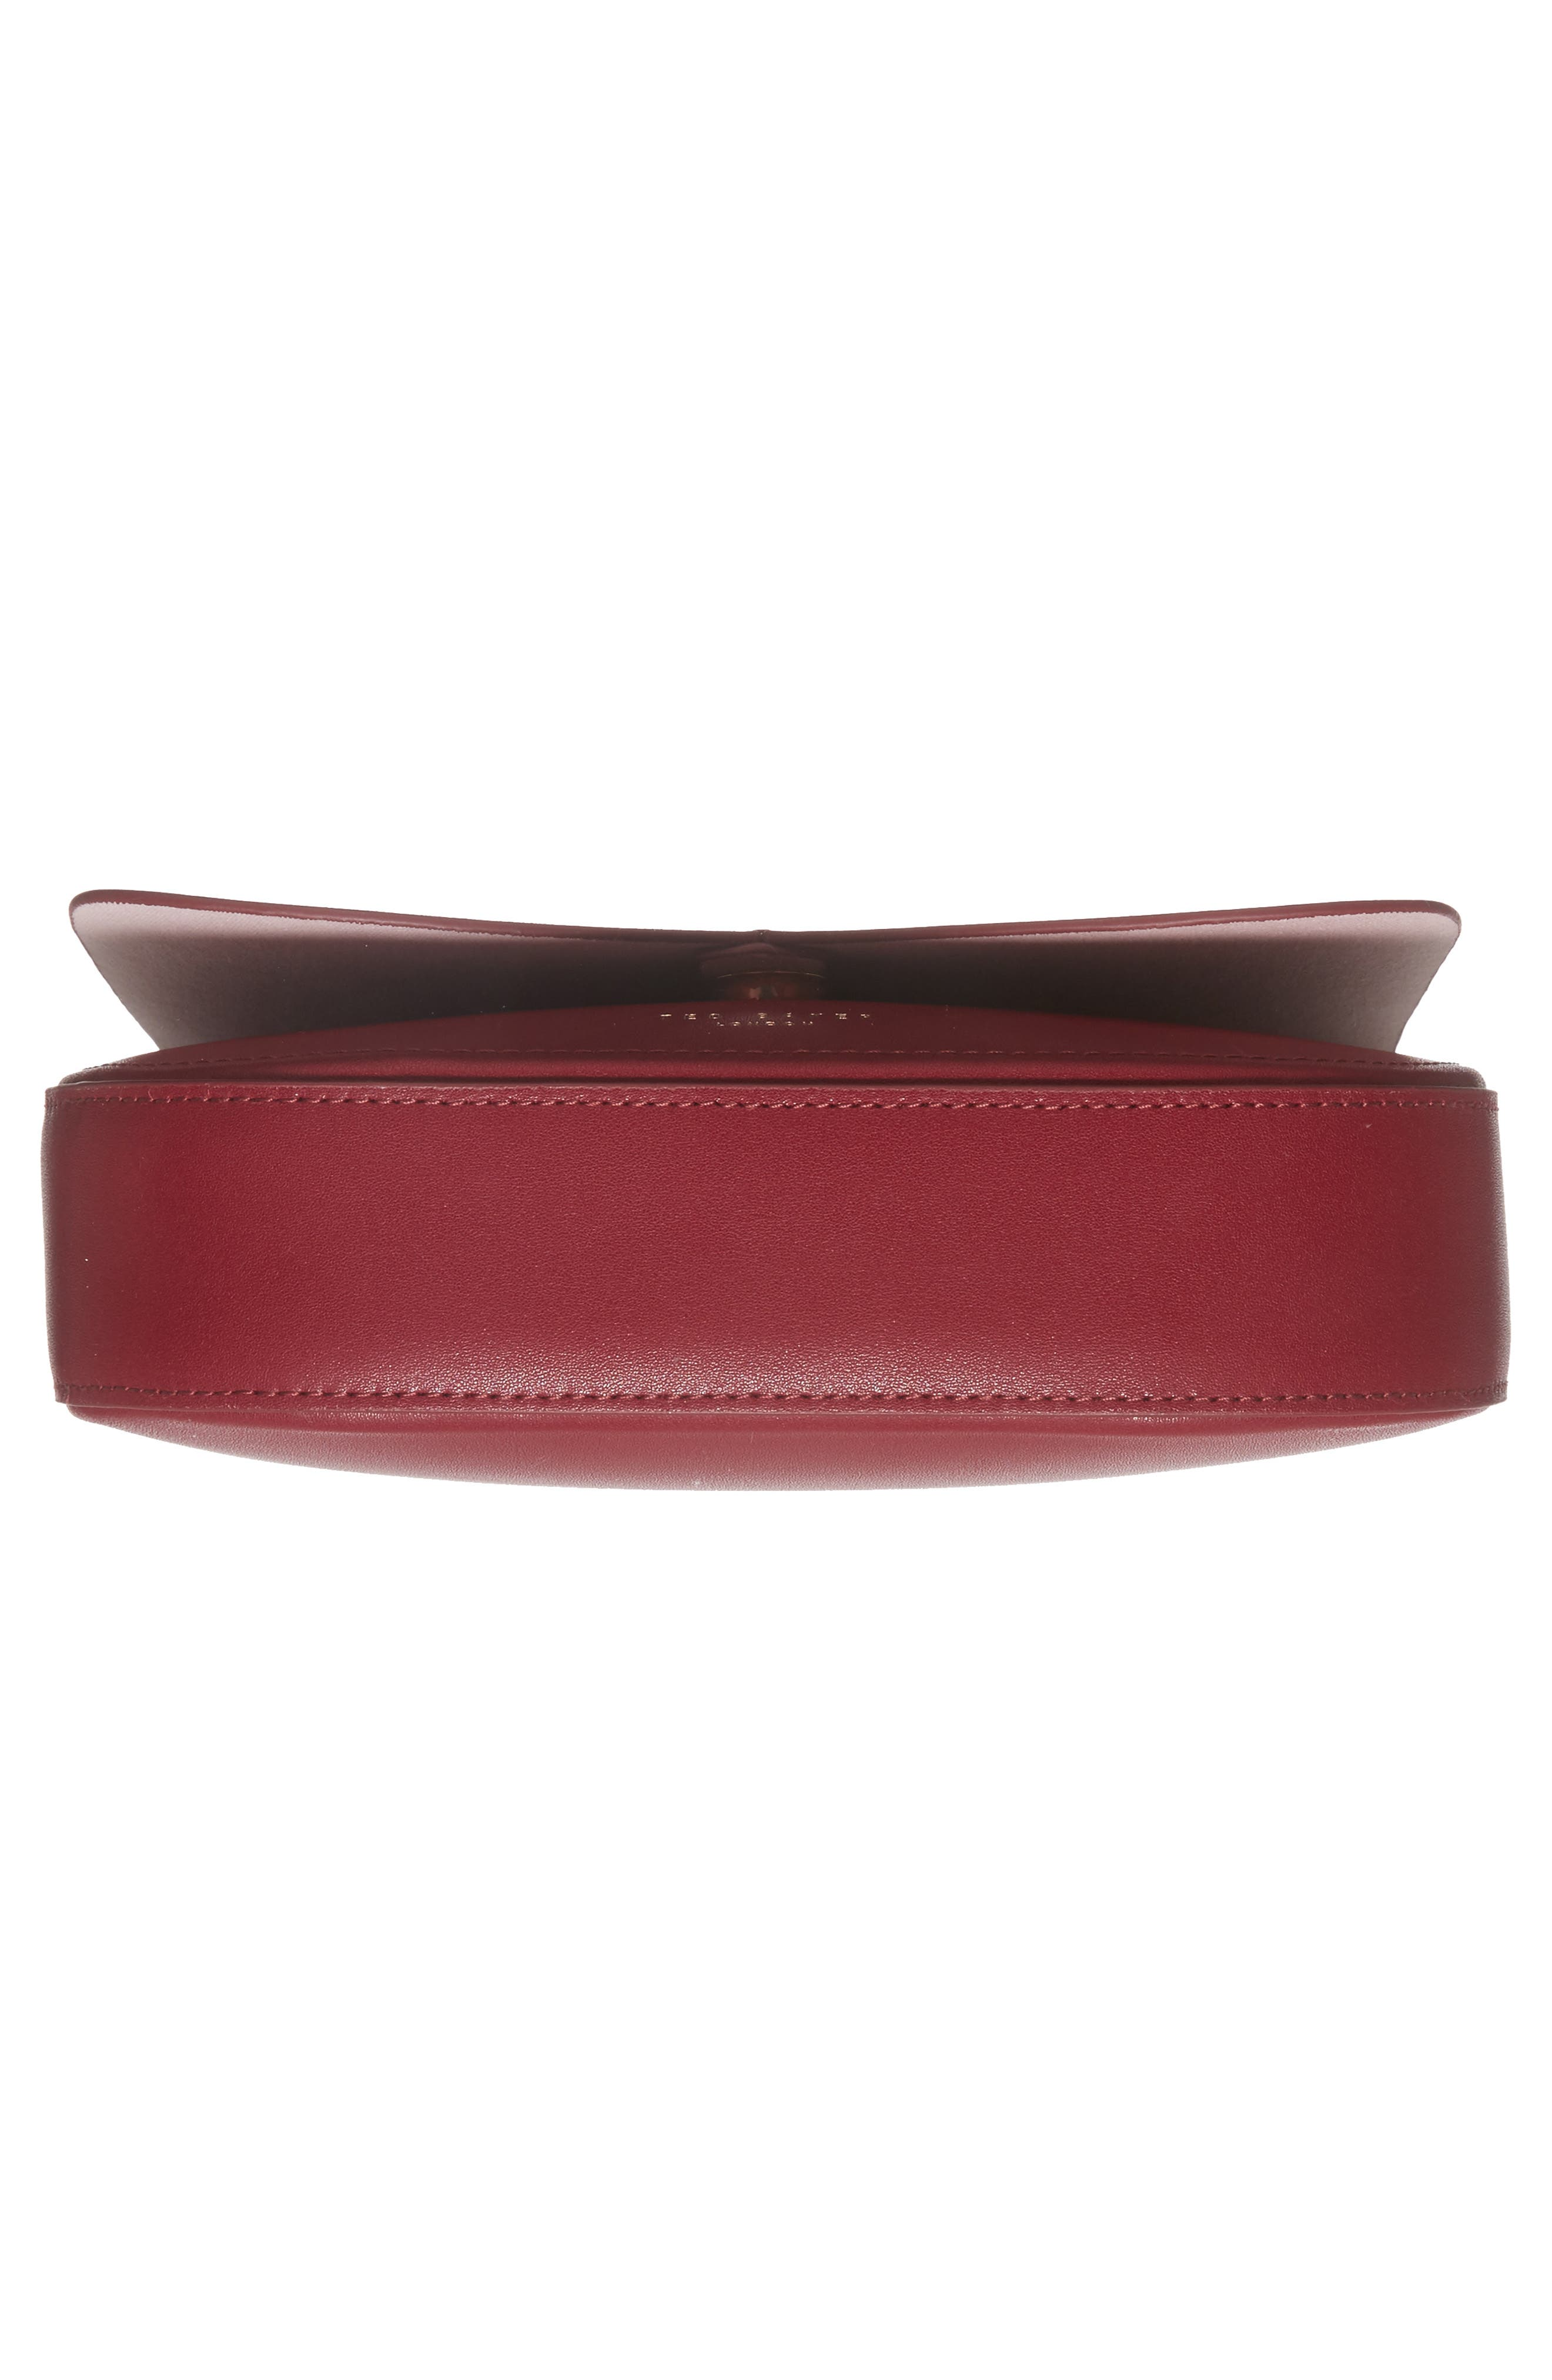 Kittii Cat Leather Crossbody Bag,                             Alternate thumbnail 6, color,                             Oxblood